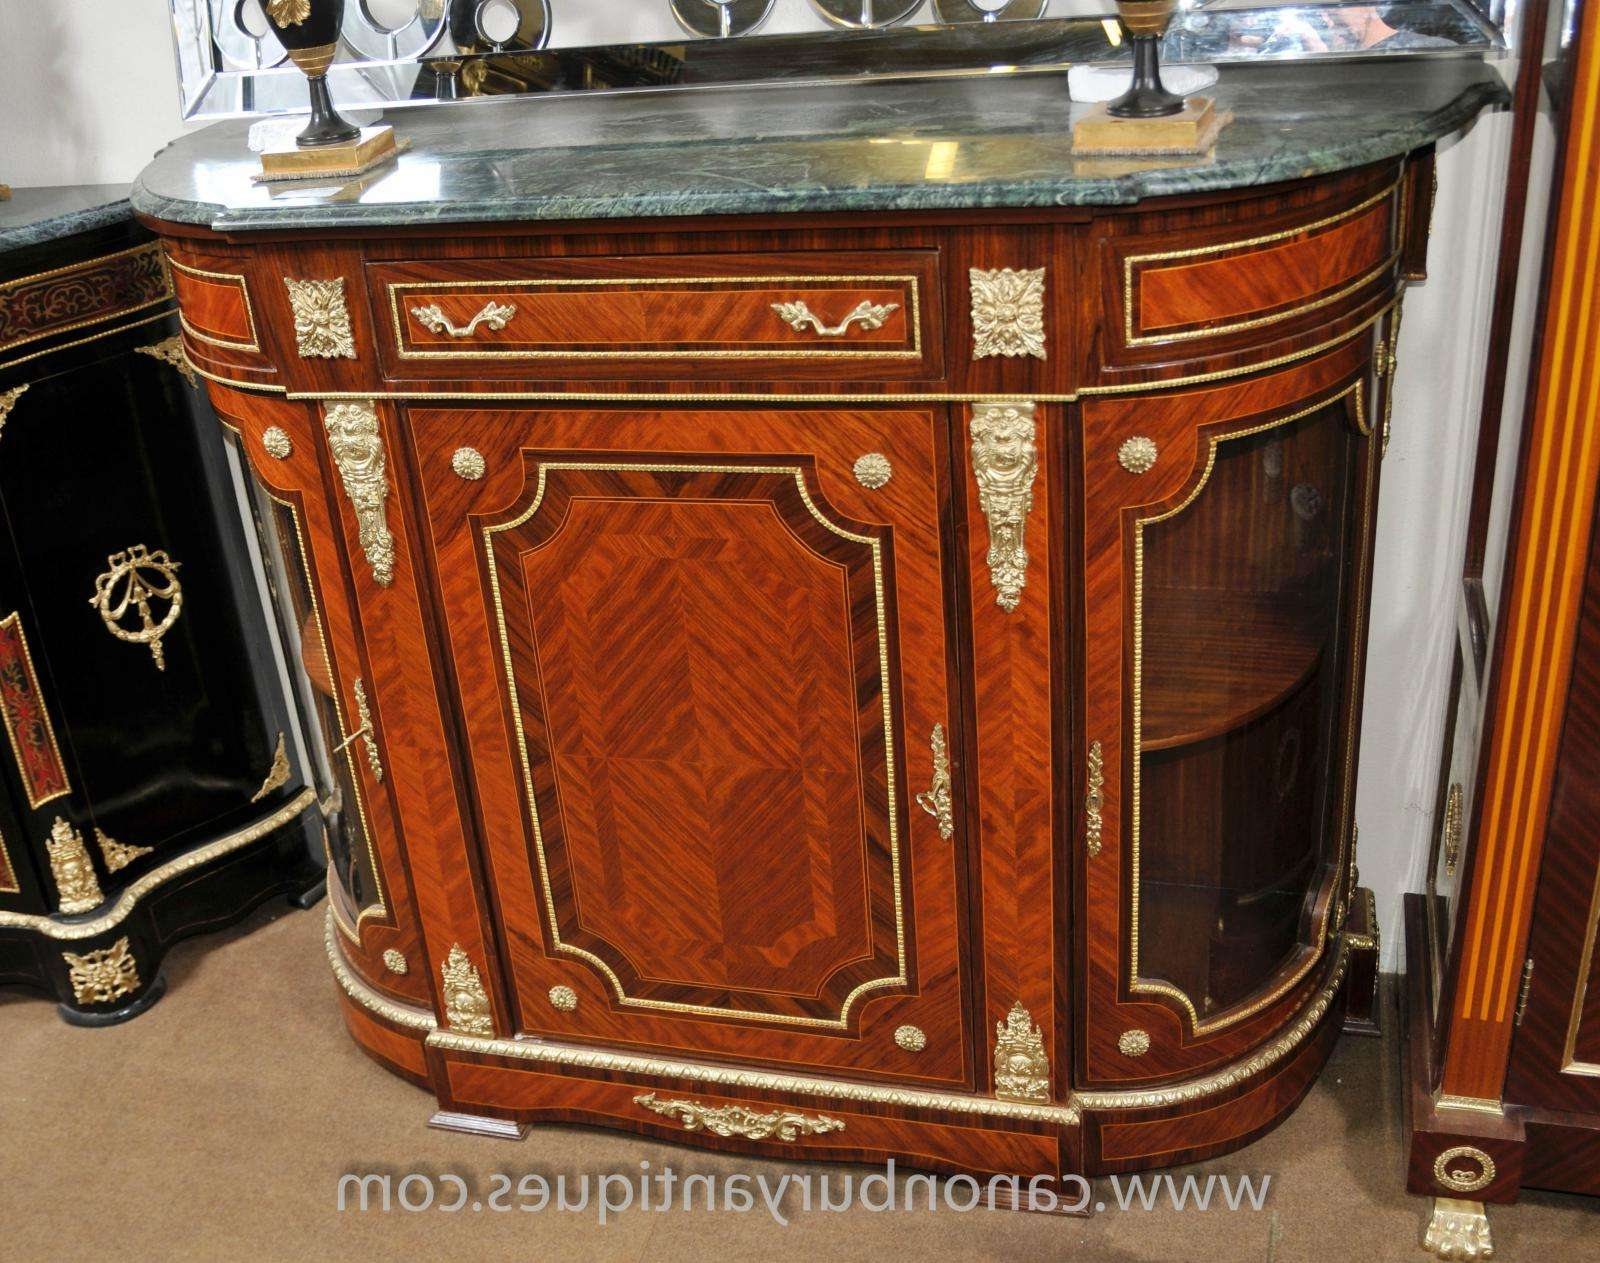 French Empire Cabinet Sideboard Kingwood Marble Top Credenza Intended For Sideboards With Marble Tops (View 6 of 20)